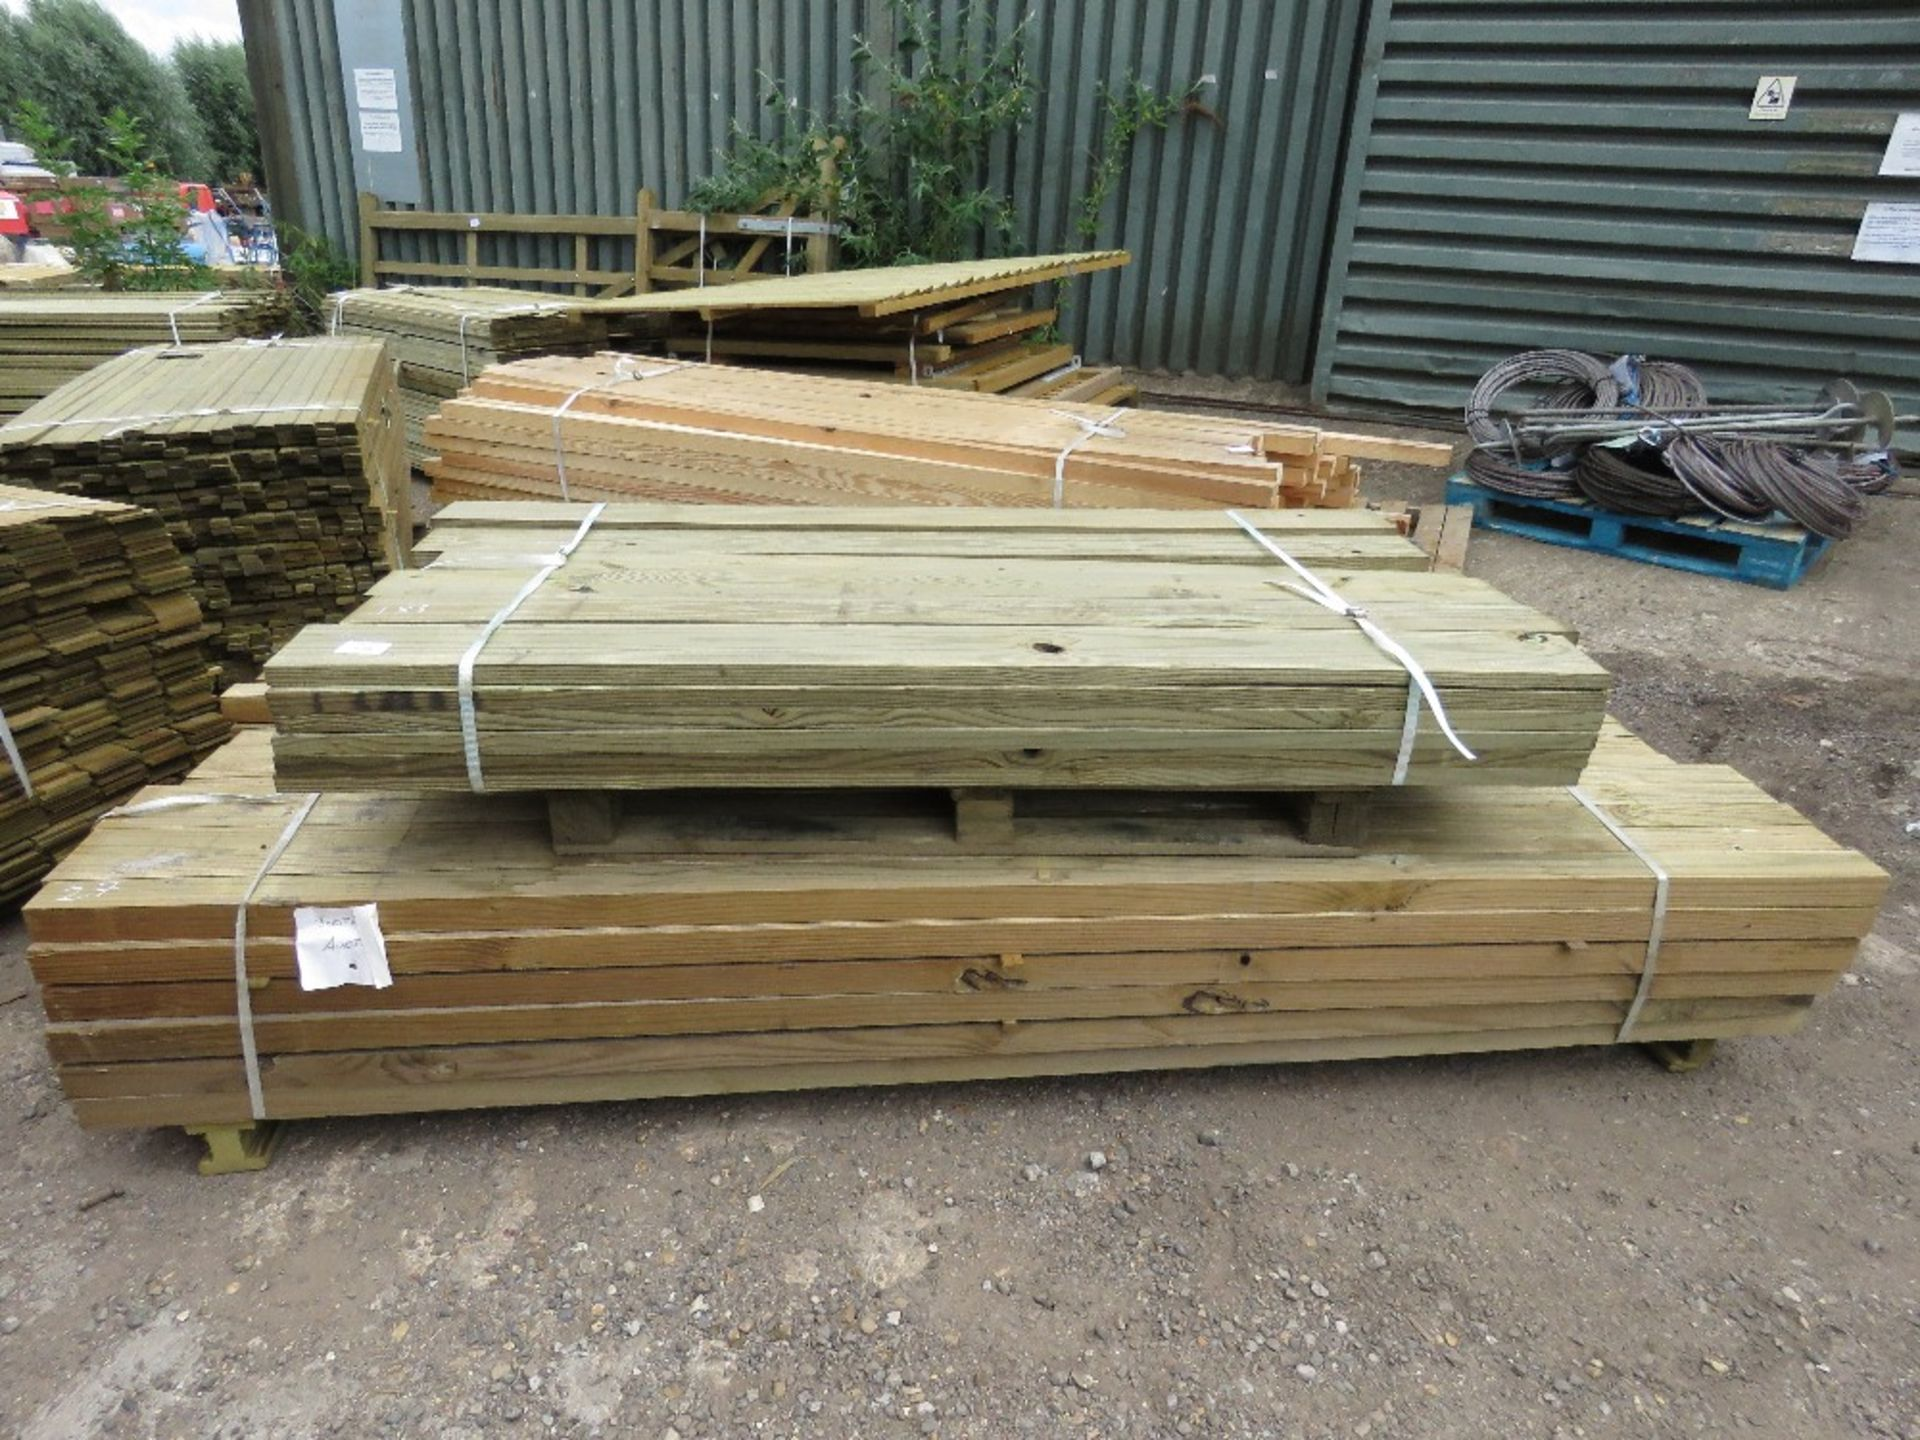 Lot 176 - 2 PACKS OF TIMBER...36NO. BOARDS @1.83M X 14.2CM POSTS: 78NO @2.7M X 7CM X 5CM APPROX